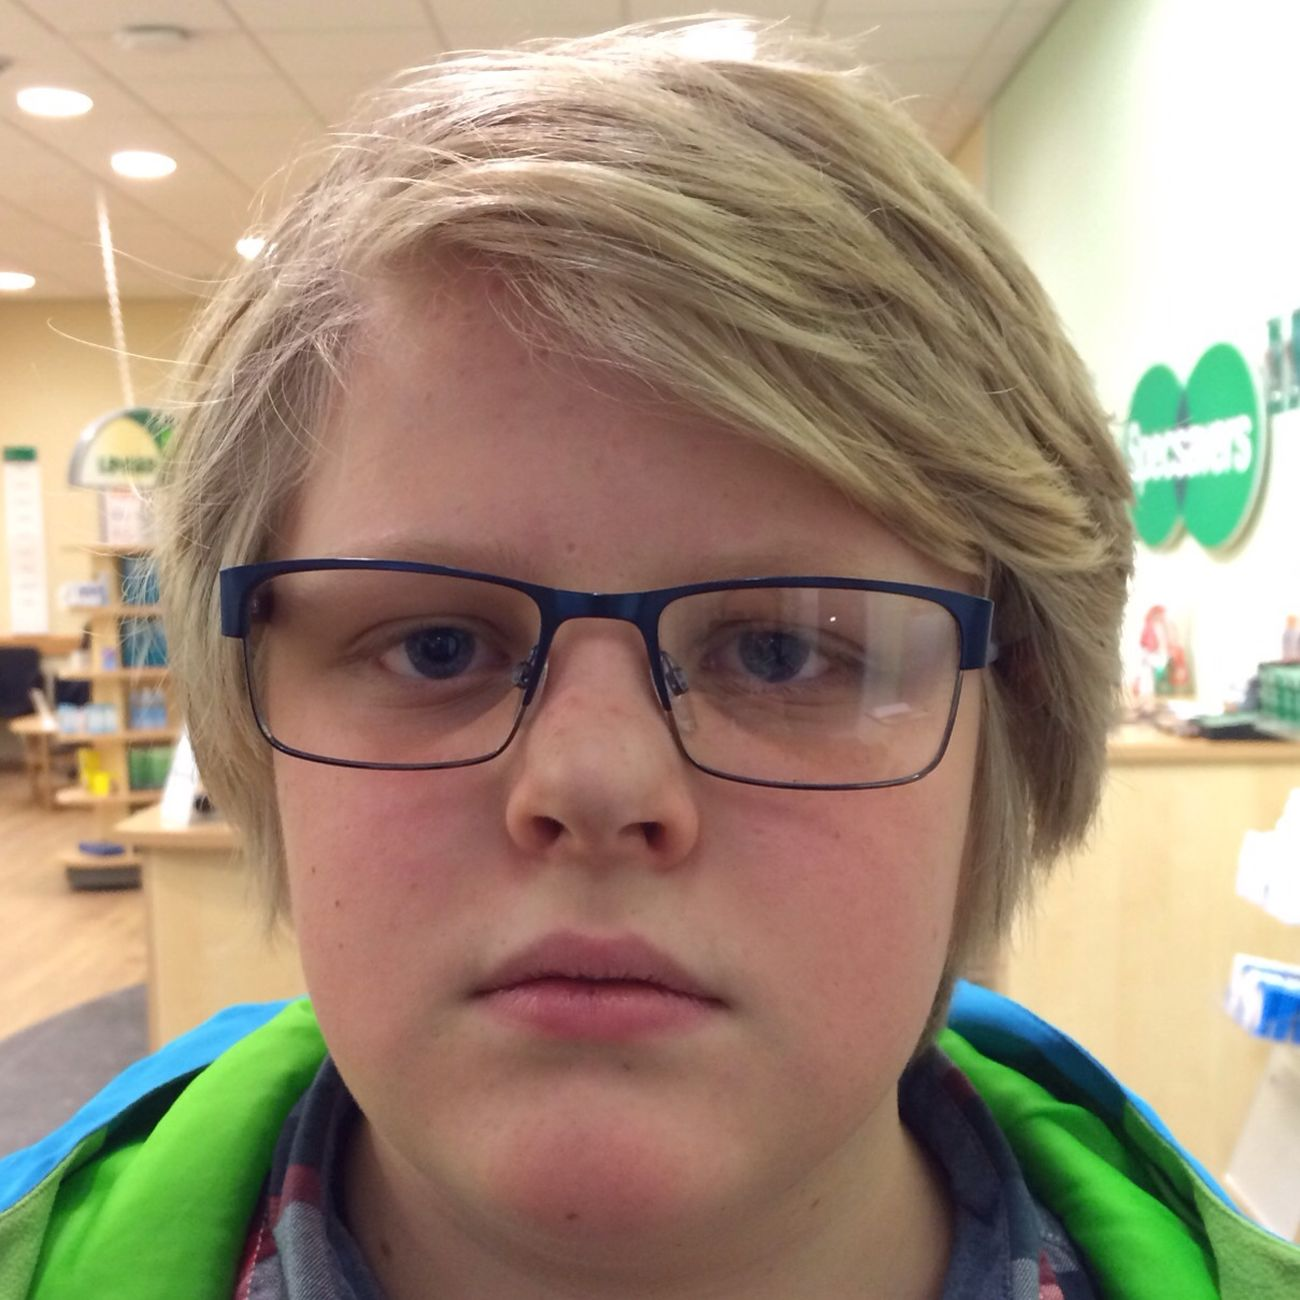 I'm gonna get glasses in a couple of weeks. What do you guys think?